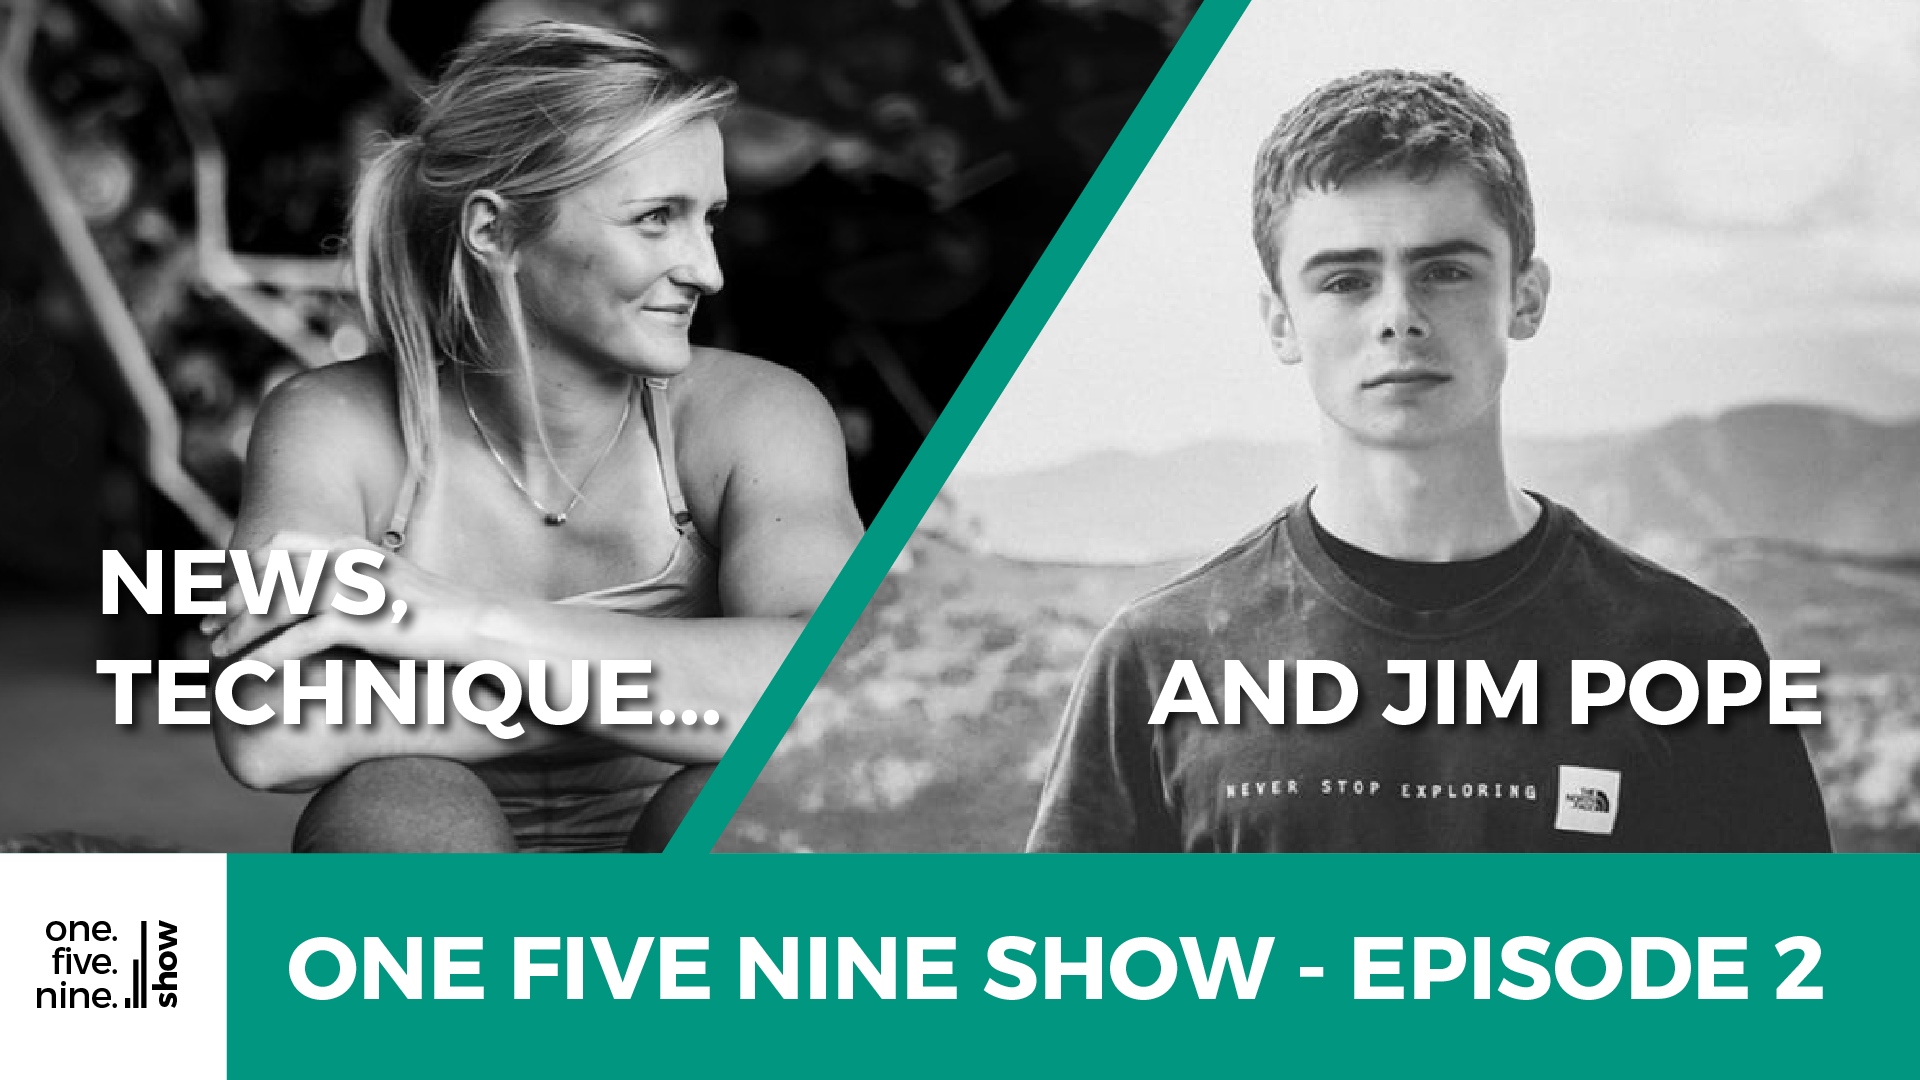 Advertise on the One Five Nine Show